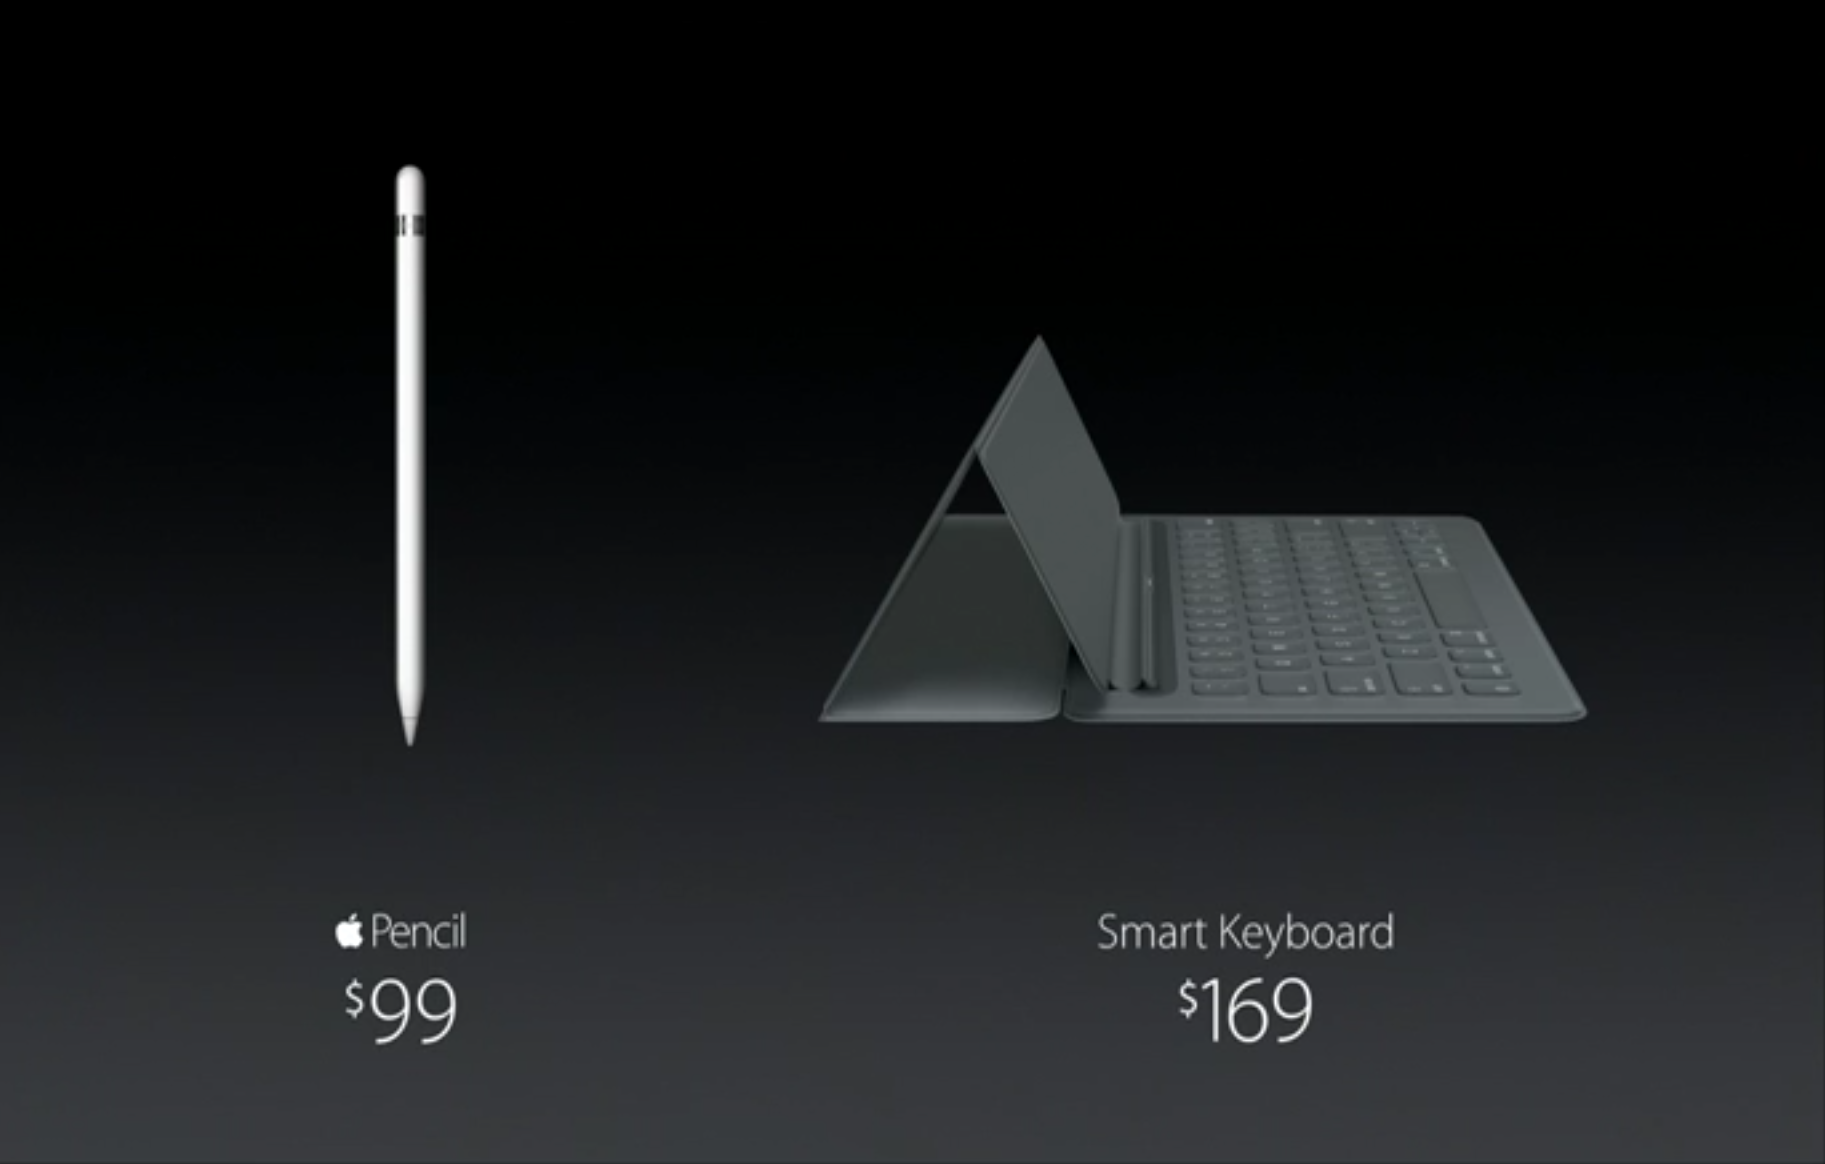 apple-pencil-and-smart-keyboard-prices